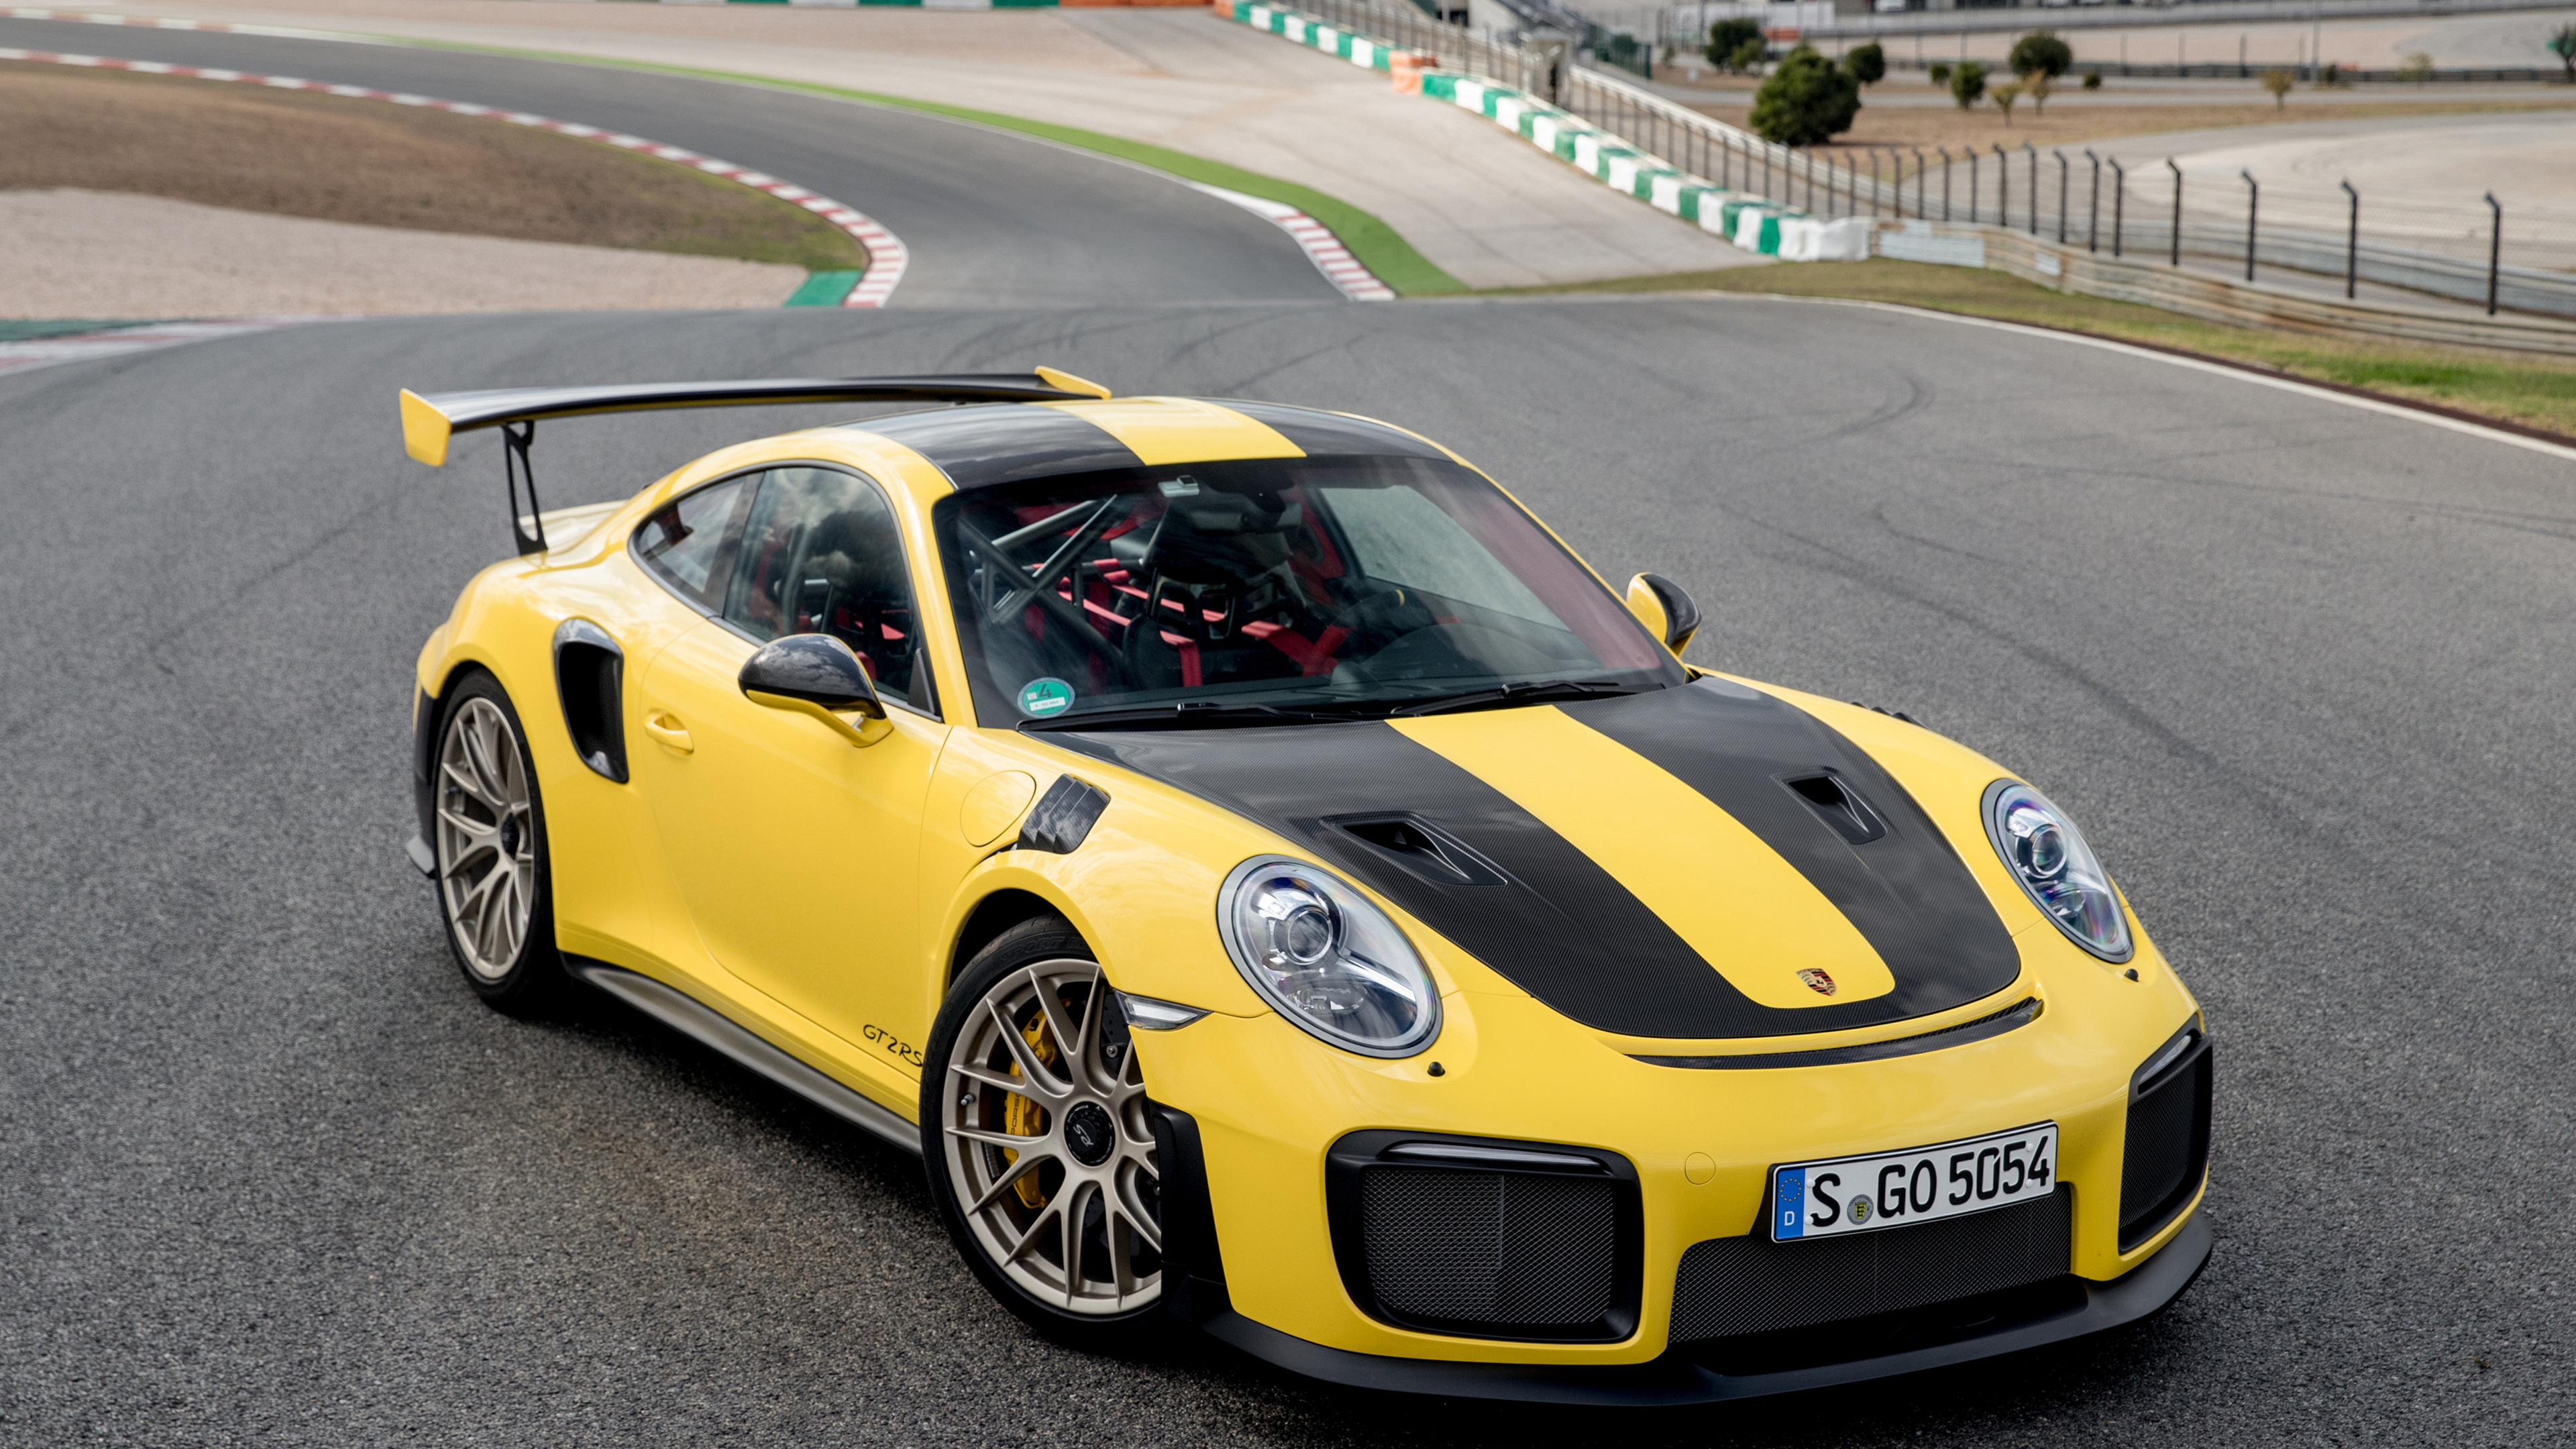 3840x2160 porsche 911 gt2 rs sports 4k hd 4k wallpapers images backgrounds photos and pictures. Black Bedroom Furniture Sets. Home Design Ideas